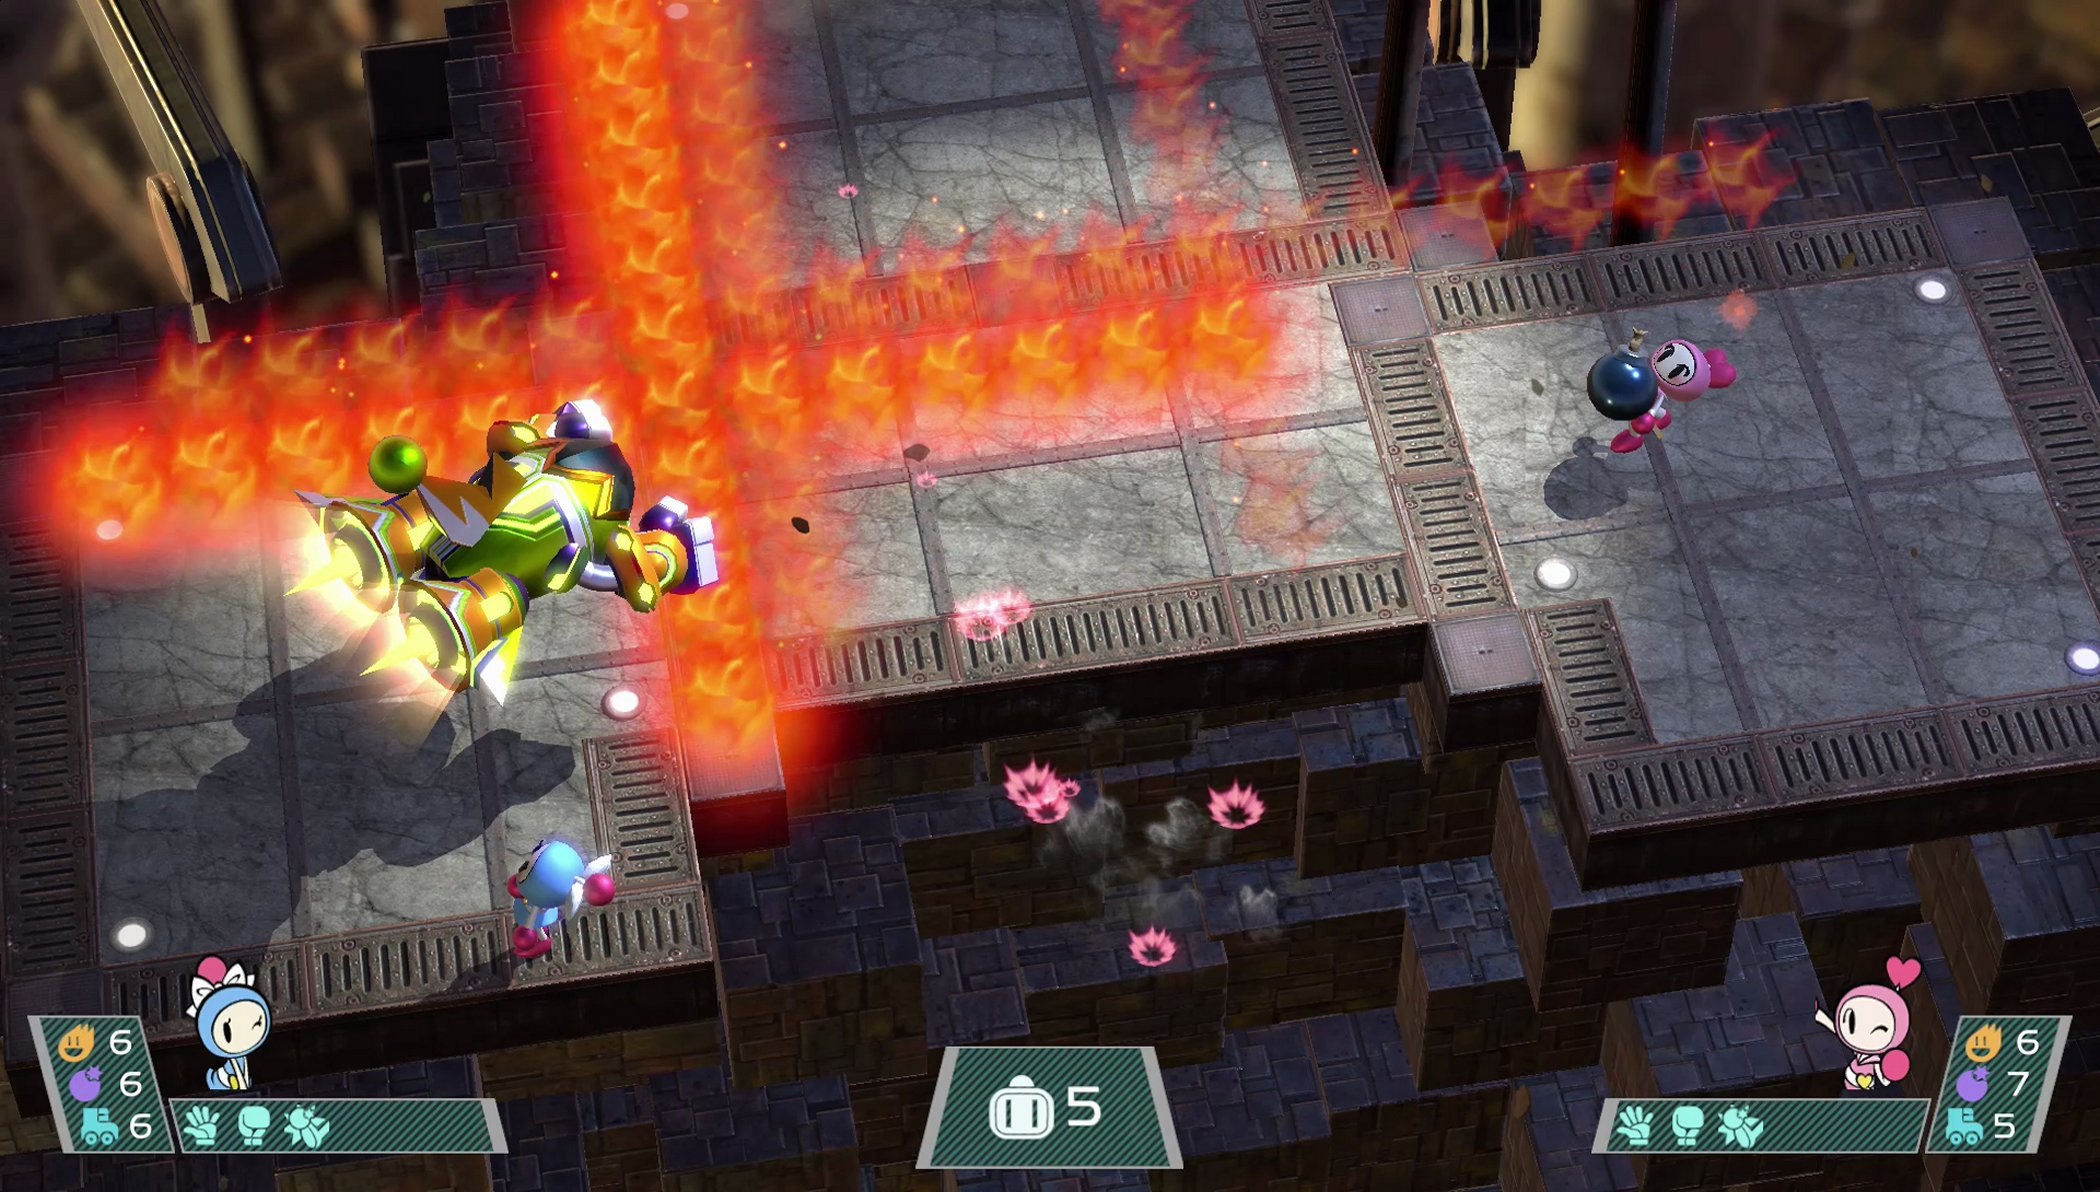 Super Bomberman R - Nintendo Switch Screenshots (10)